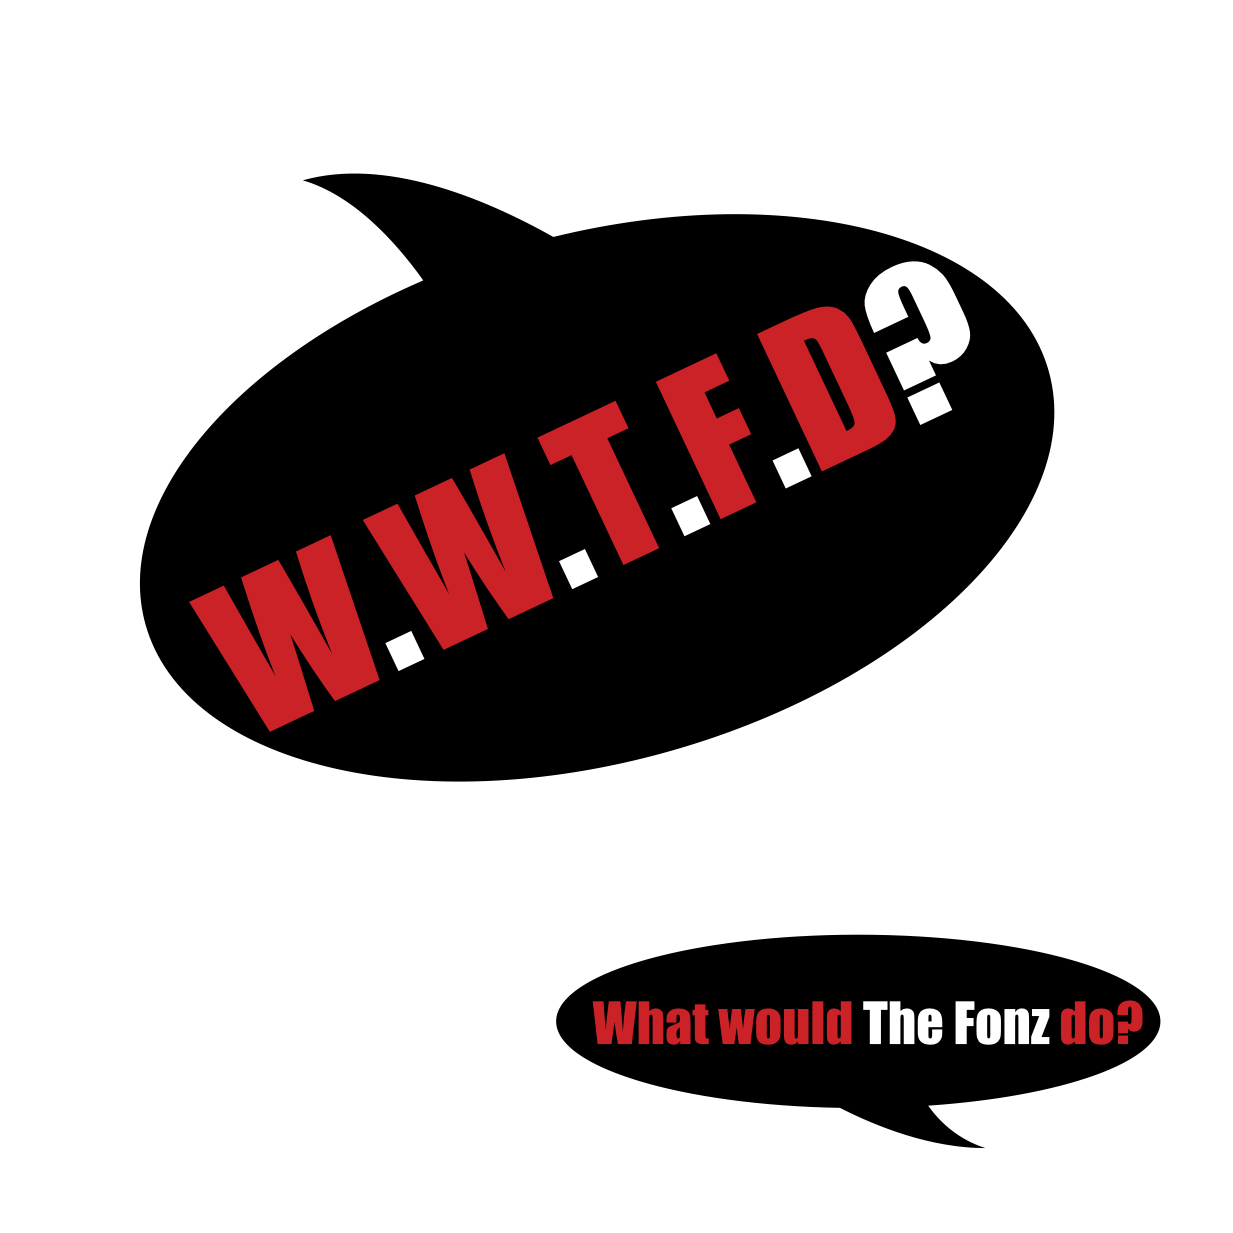 W.W.T.F.D? What would The Fonz do?, etc.- coaster set